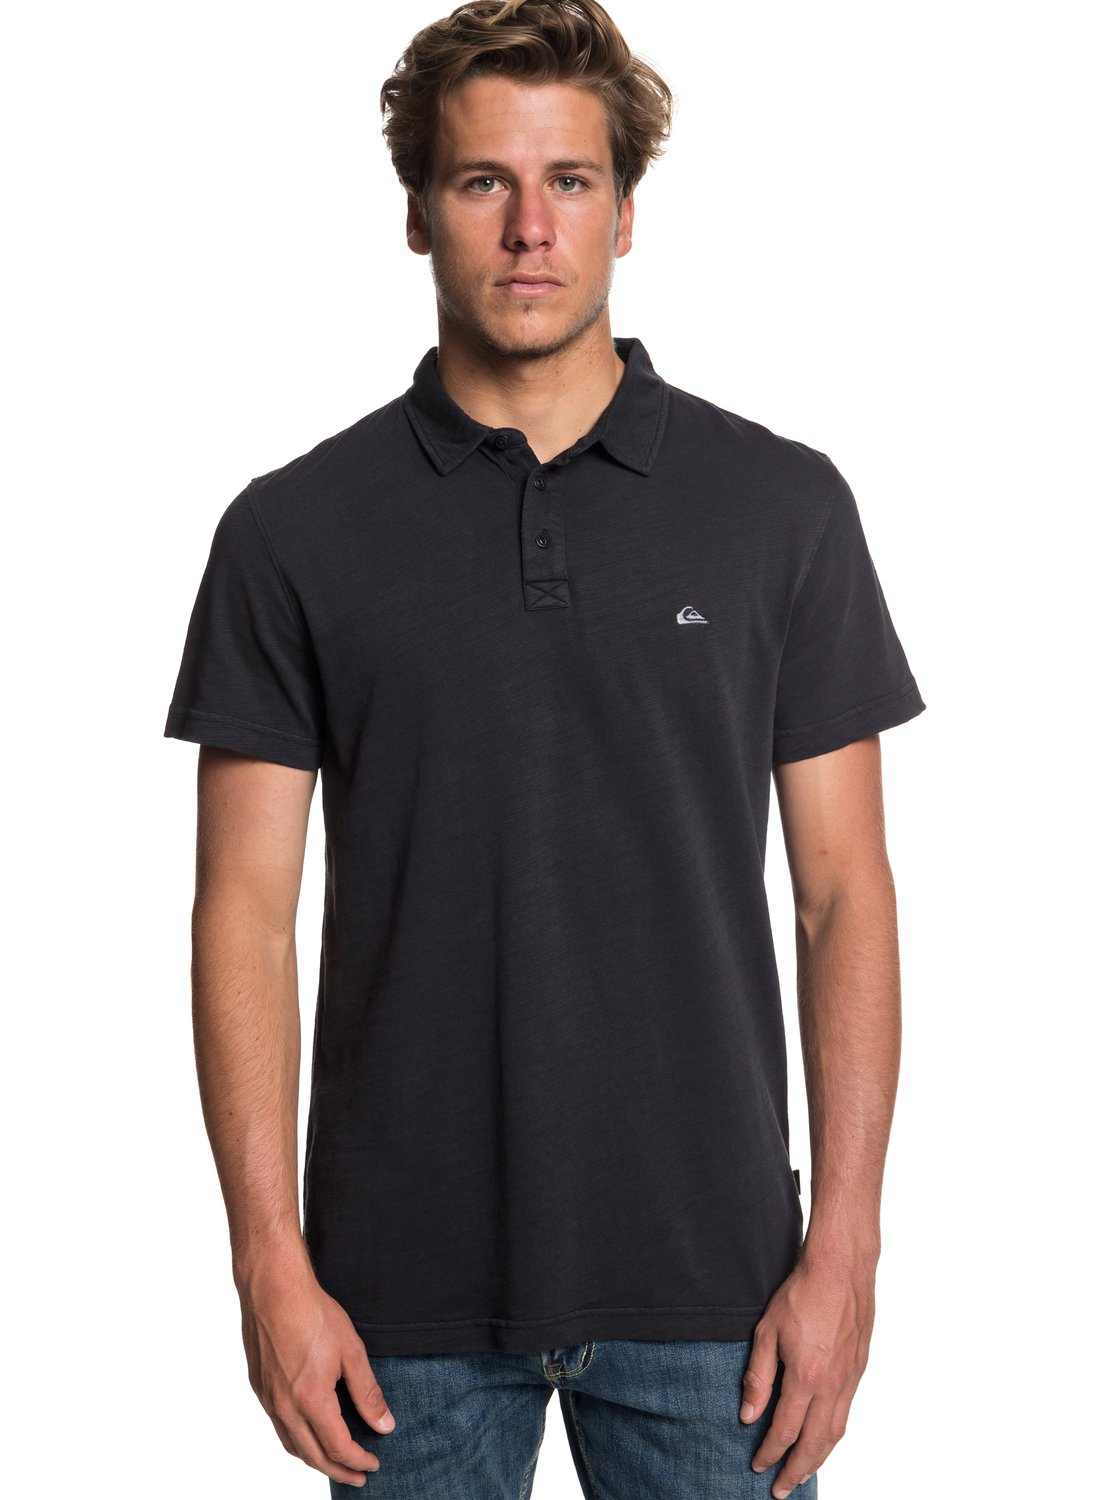 1ca9adef94 Image is loading Quiksilver-Everyday-Sun-Cruise-Short-Sleeve-Polo-Shirt-